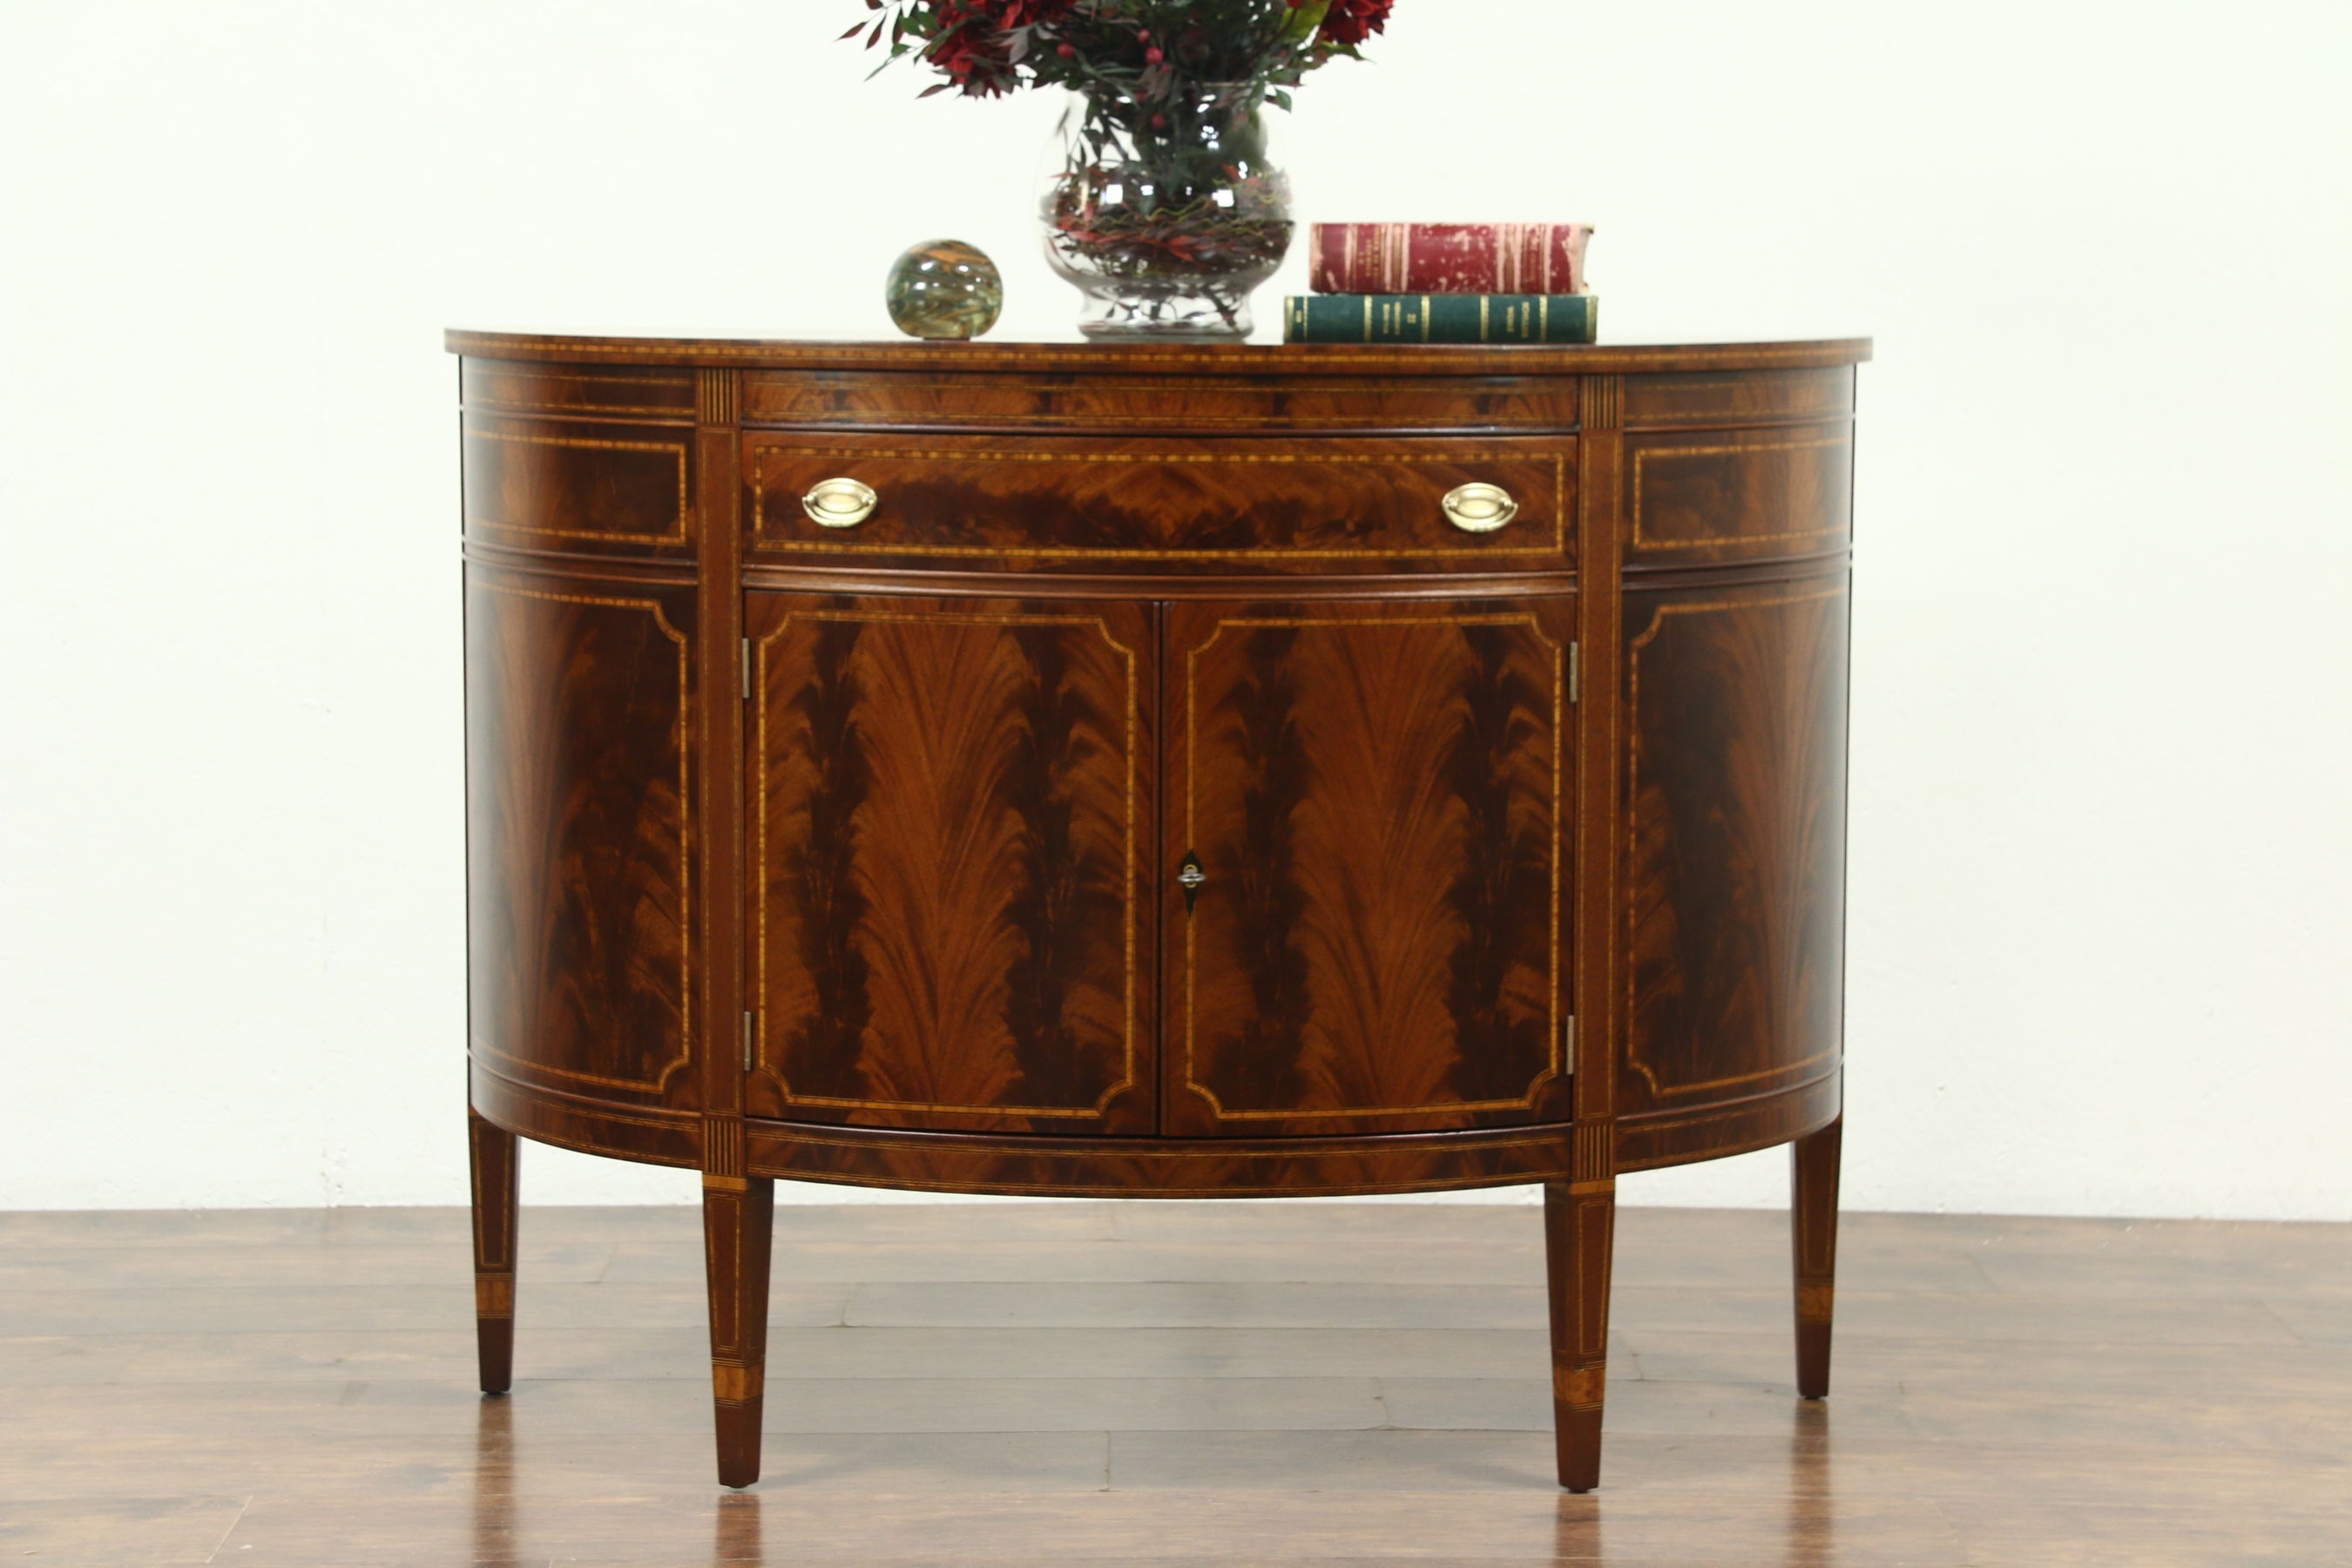 Sold - Demilune Half Round Vintage Sideboard Or Console Cabinet for Vintage Brown Textured Sideboards (Image 16 of 30)